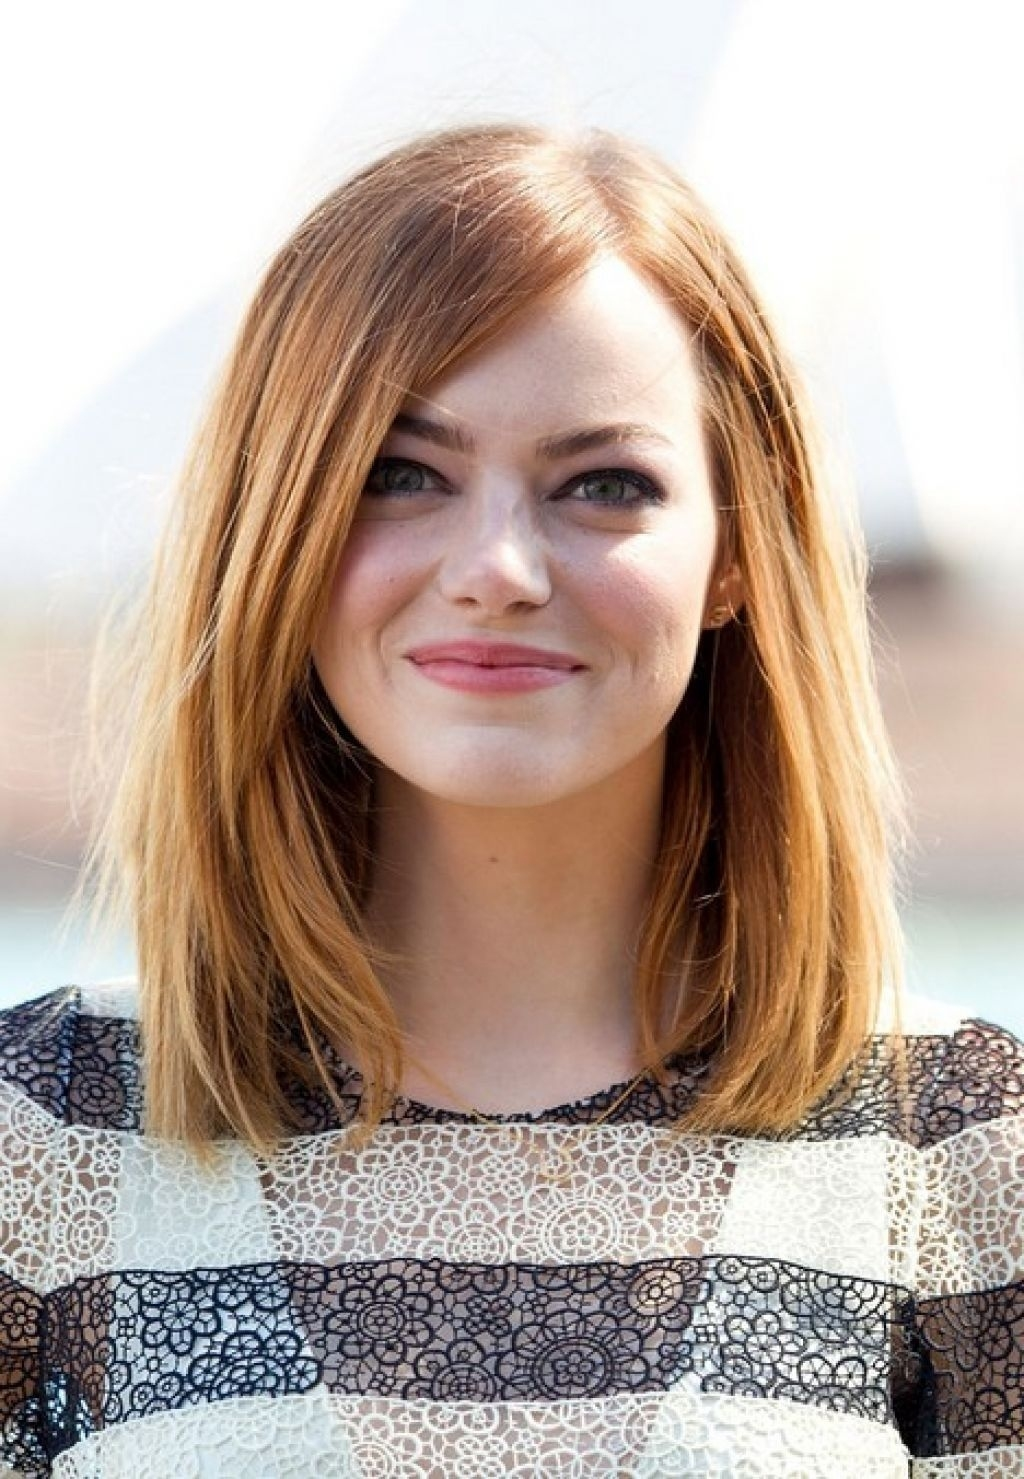 Asian Women Hairstyles For Round Faces Haircut For Round Chubby Face intended for Deep U Haircut For Round Face